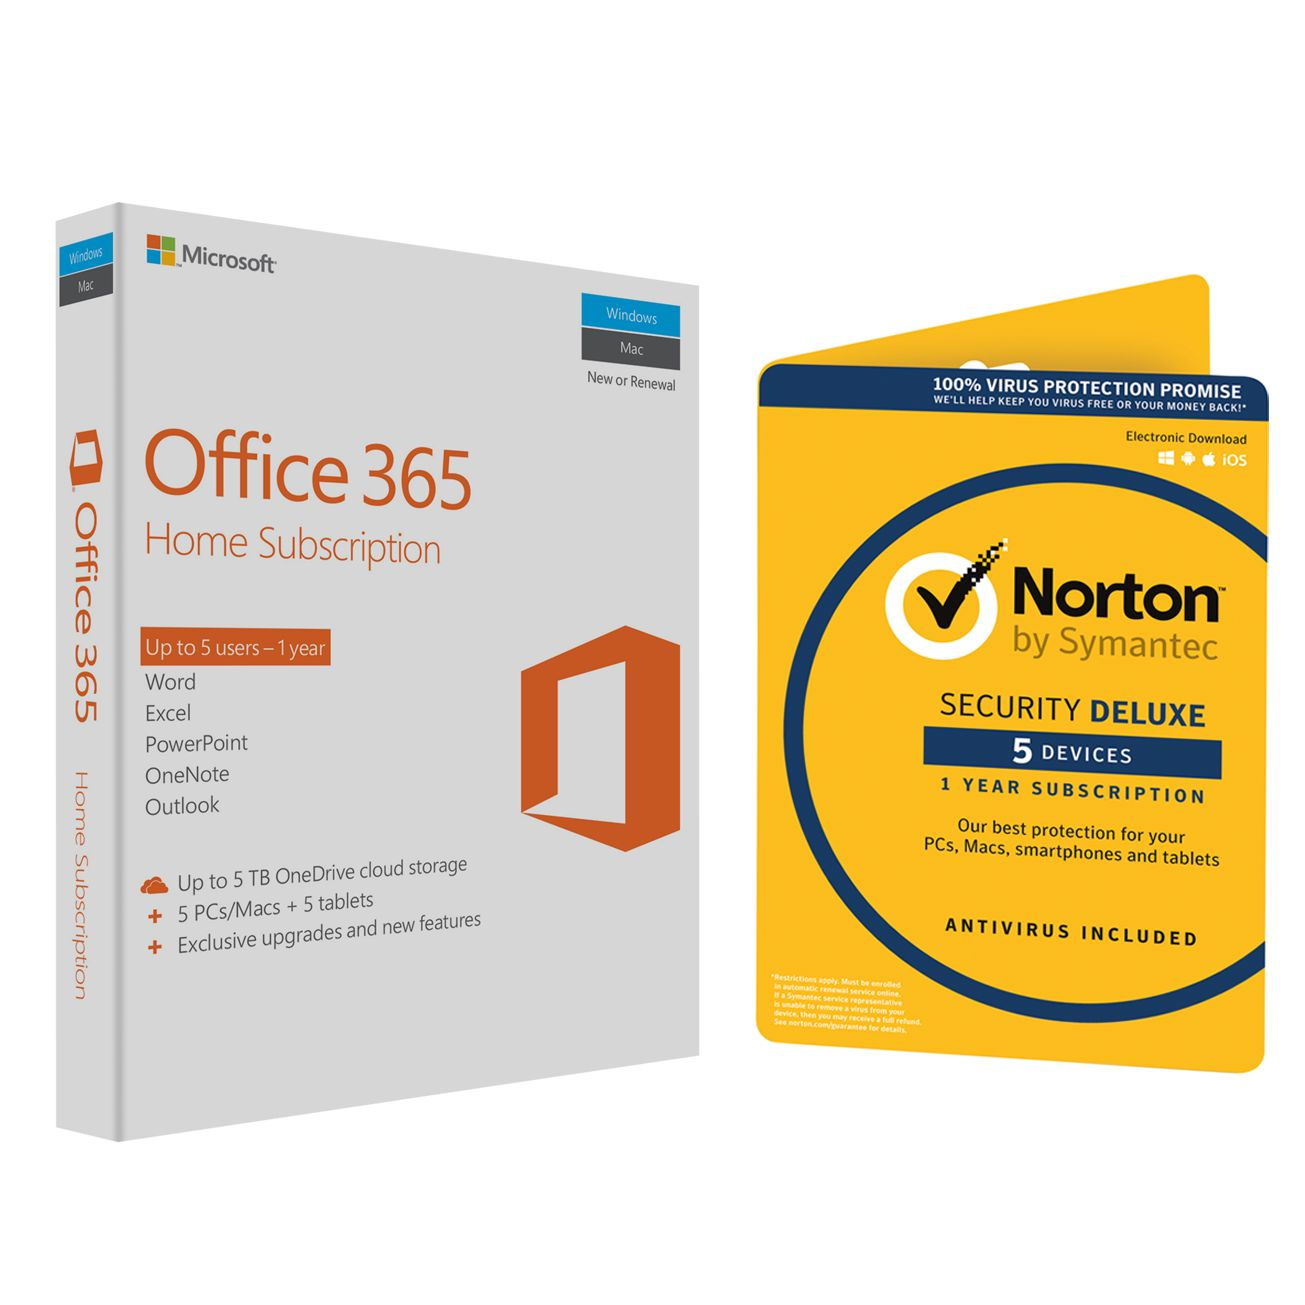 Microsoft Office 365 Home Premium 5 PCs/Macs and Tablet One-Year ...